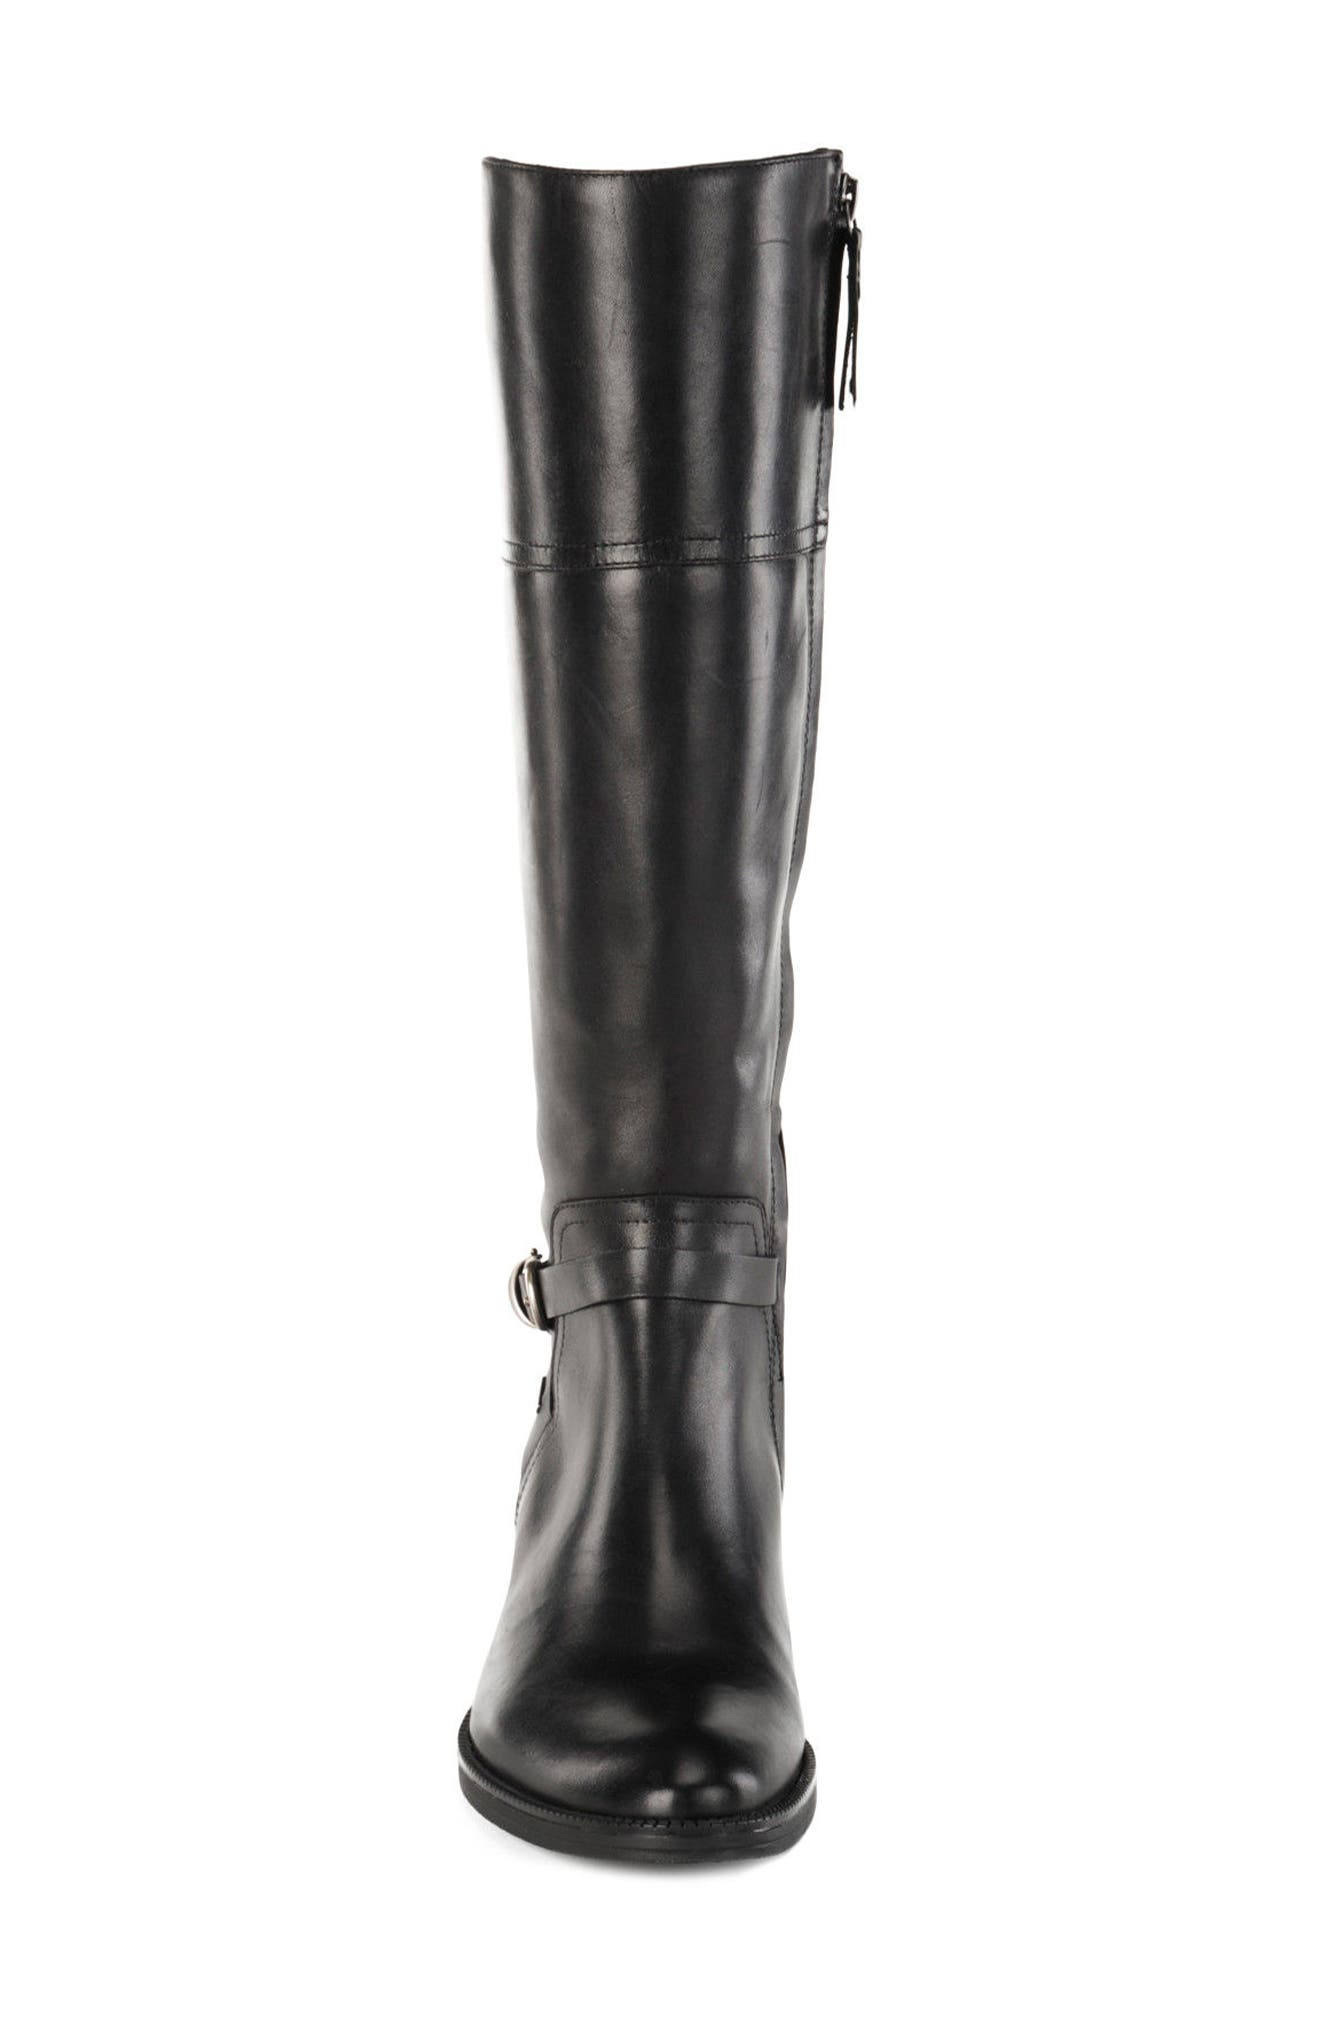 Mendin ABX Waterproof Riding Boot,                             Alternate thumbnail 4, color,                             001